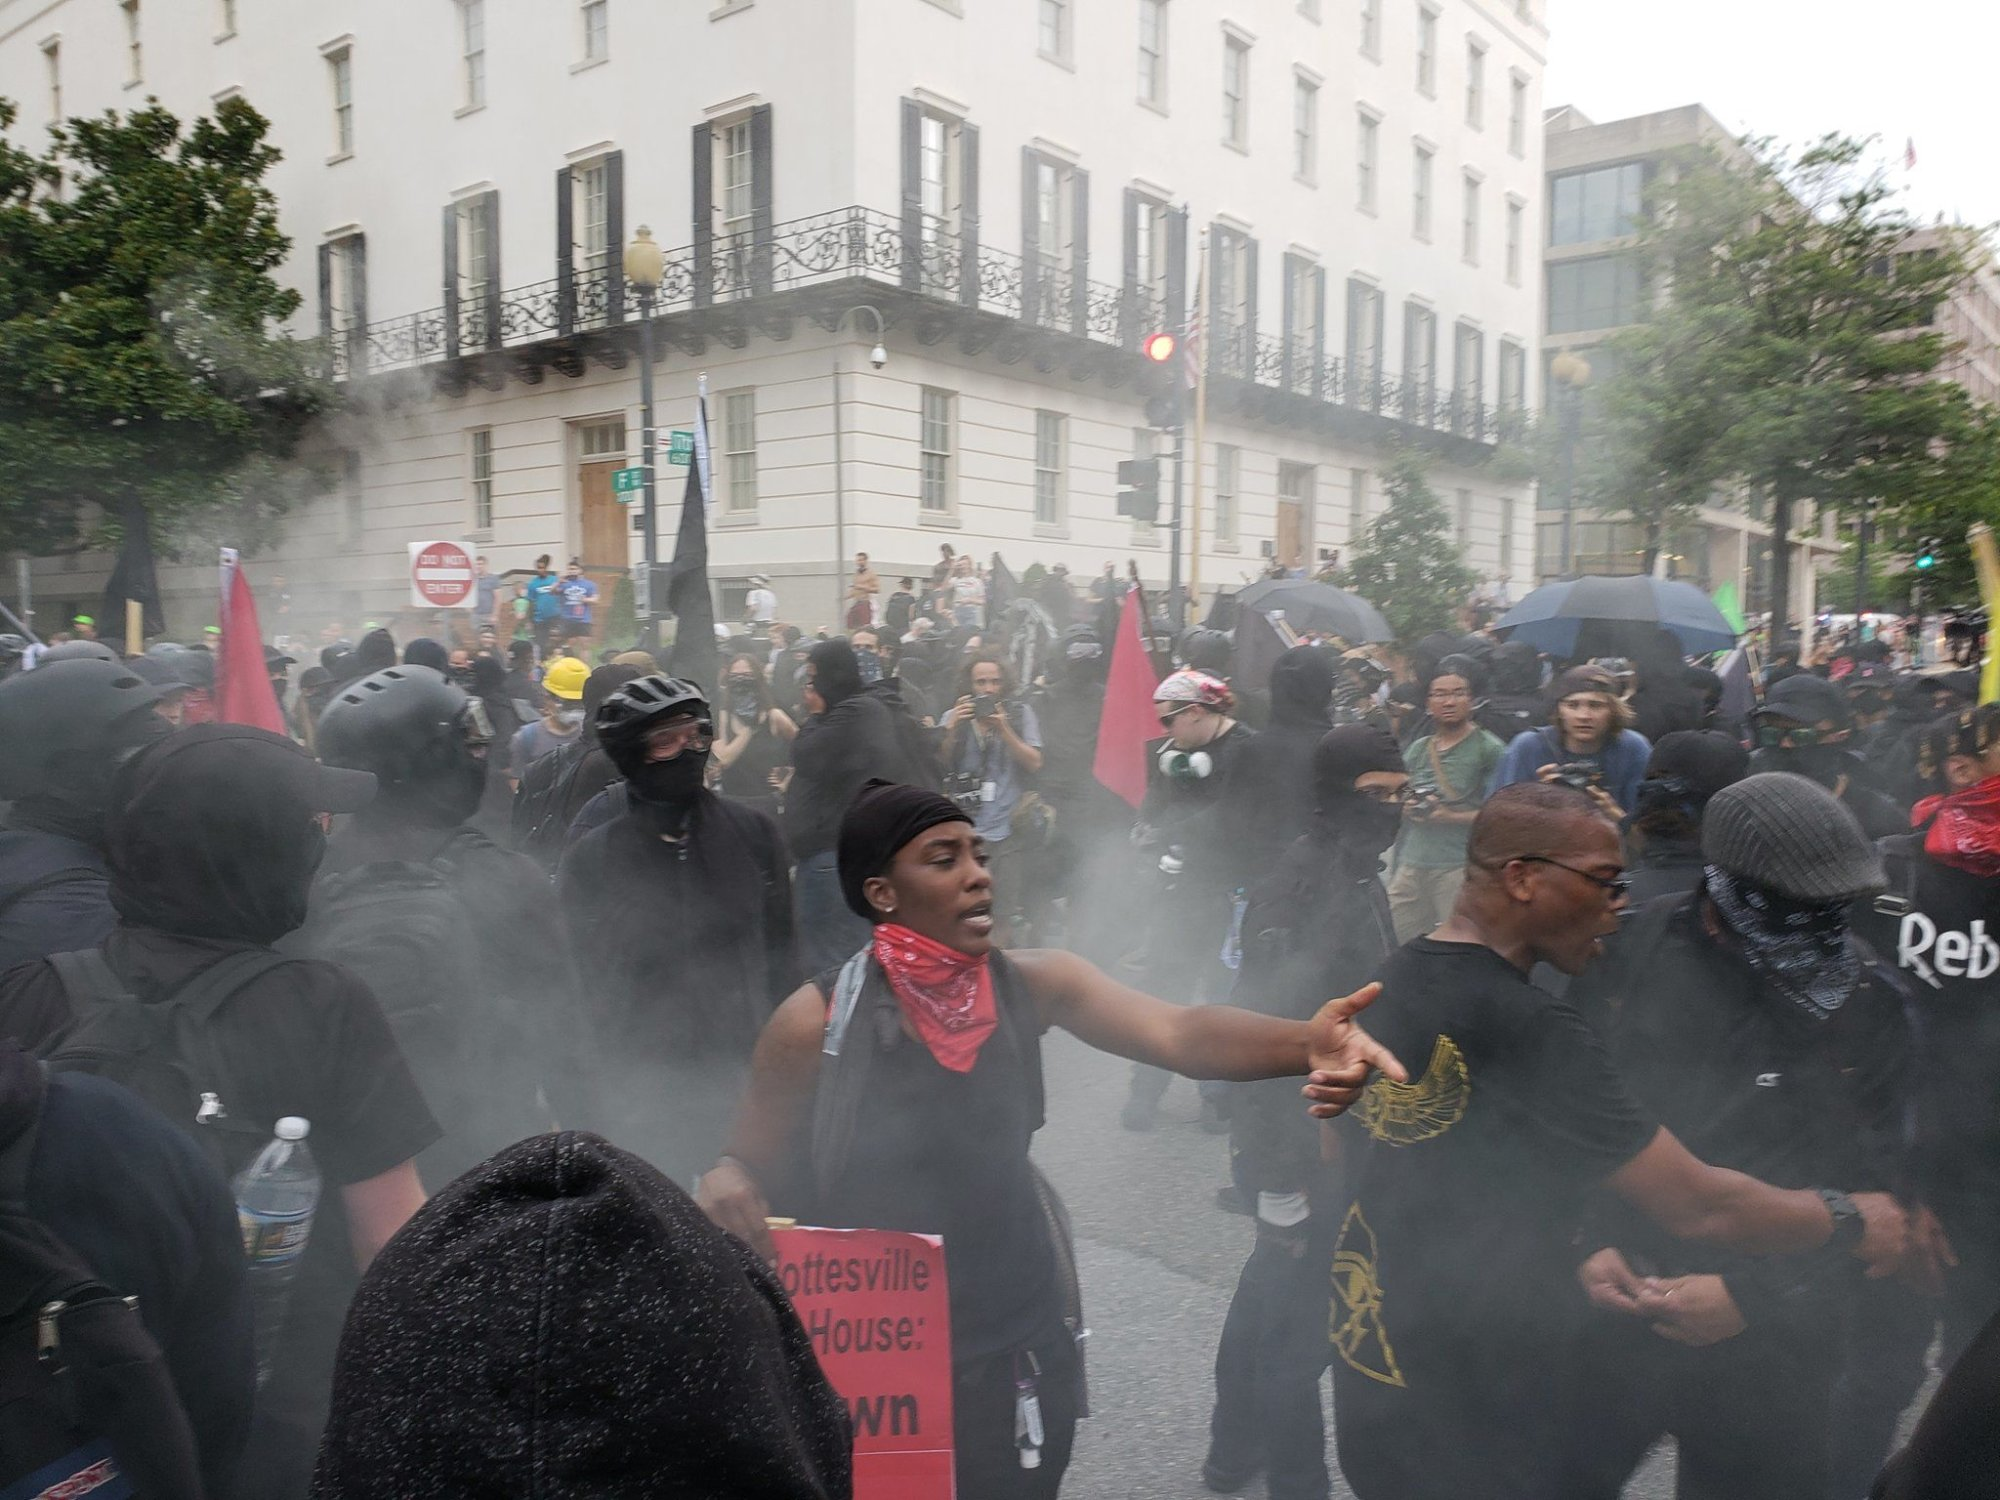 """Antifa counterprotesters take to the streets in D.C. during """"Unite the Right 2"""" Sunday. (Courtesy Wilson Dizard)"""